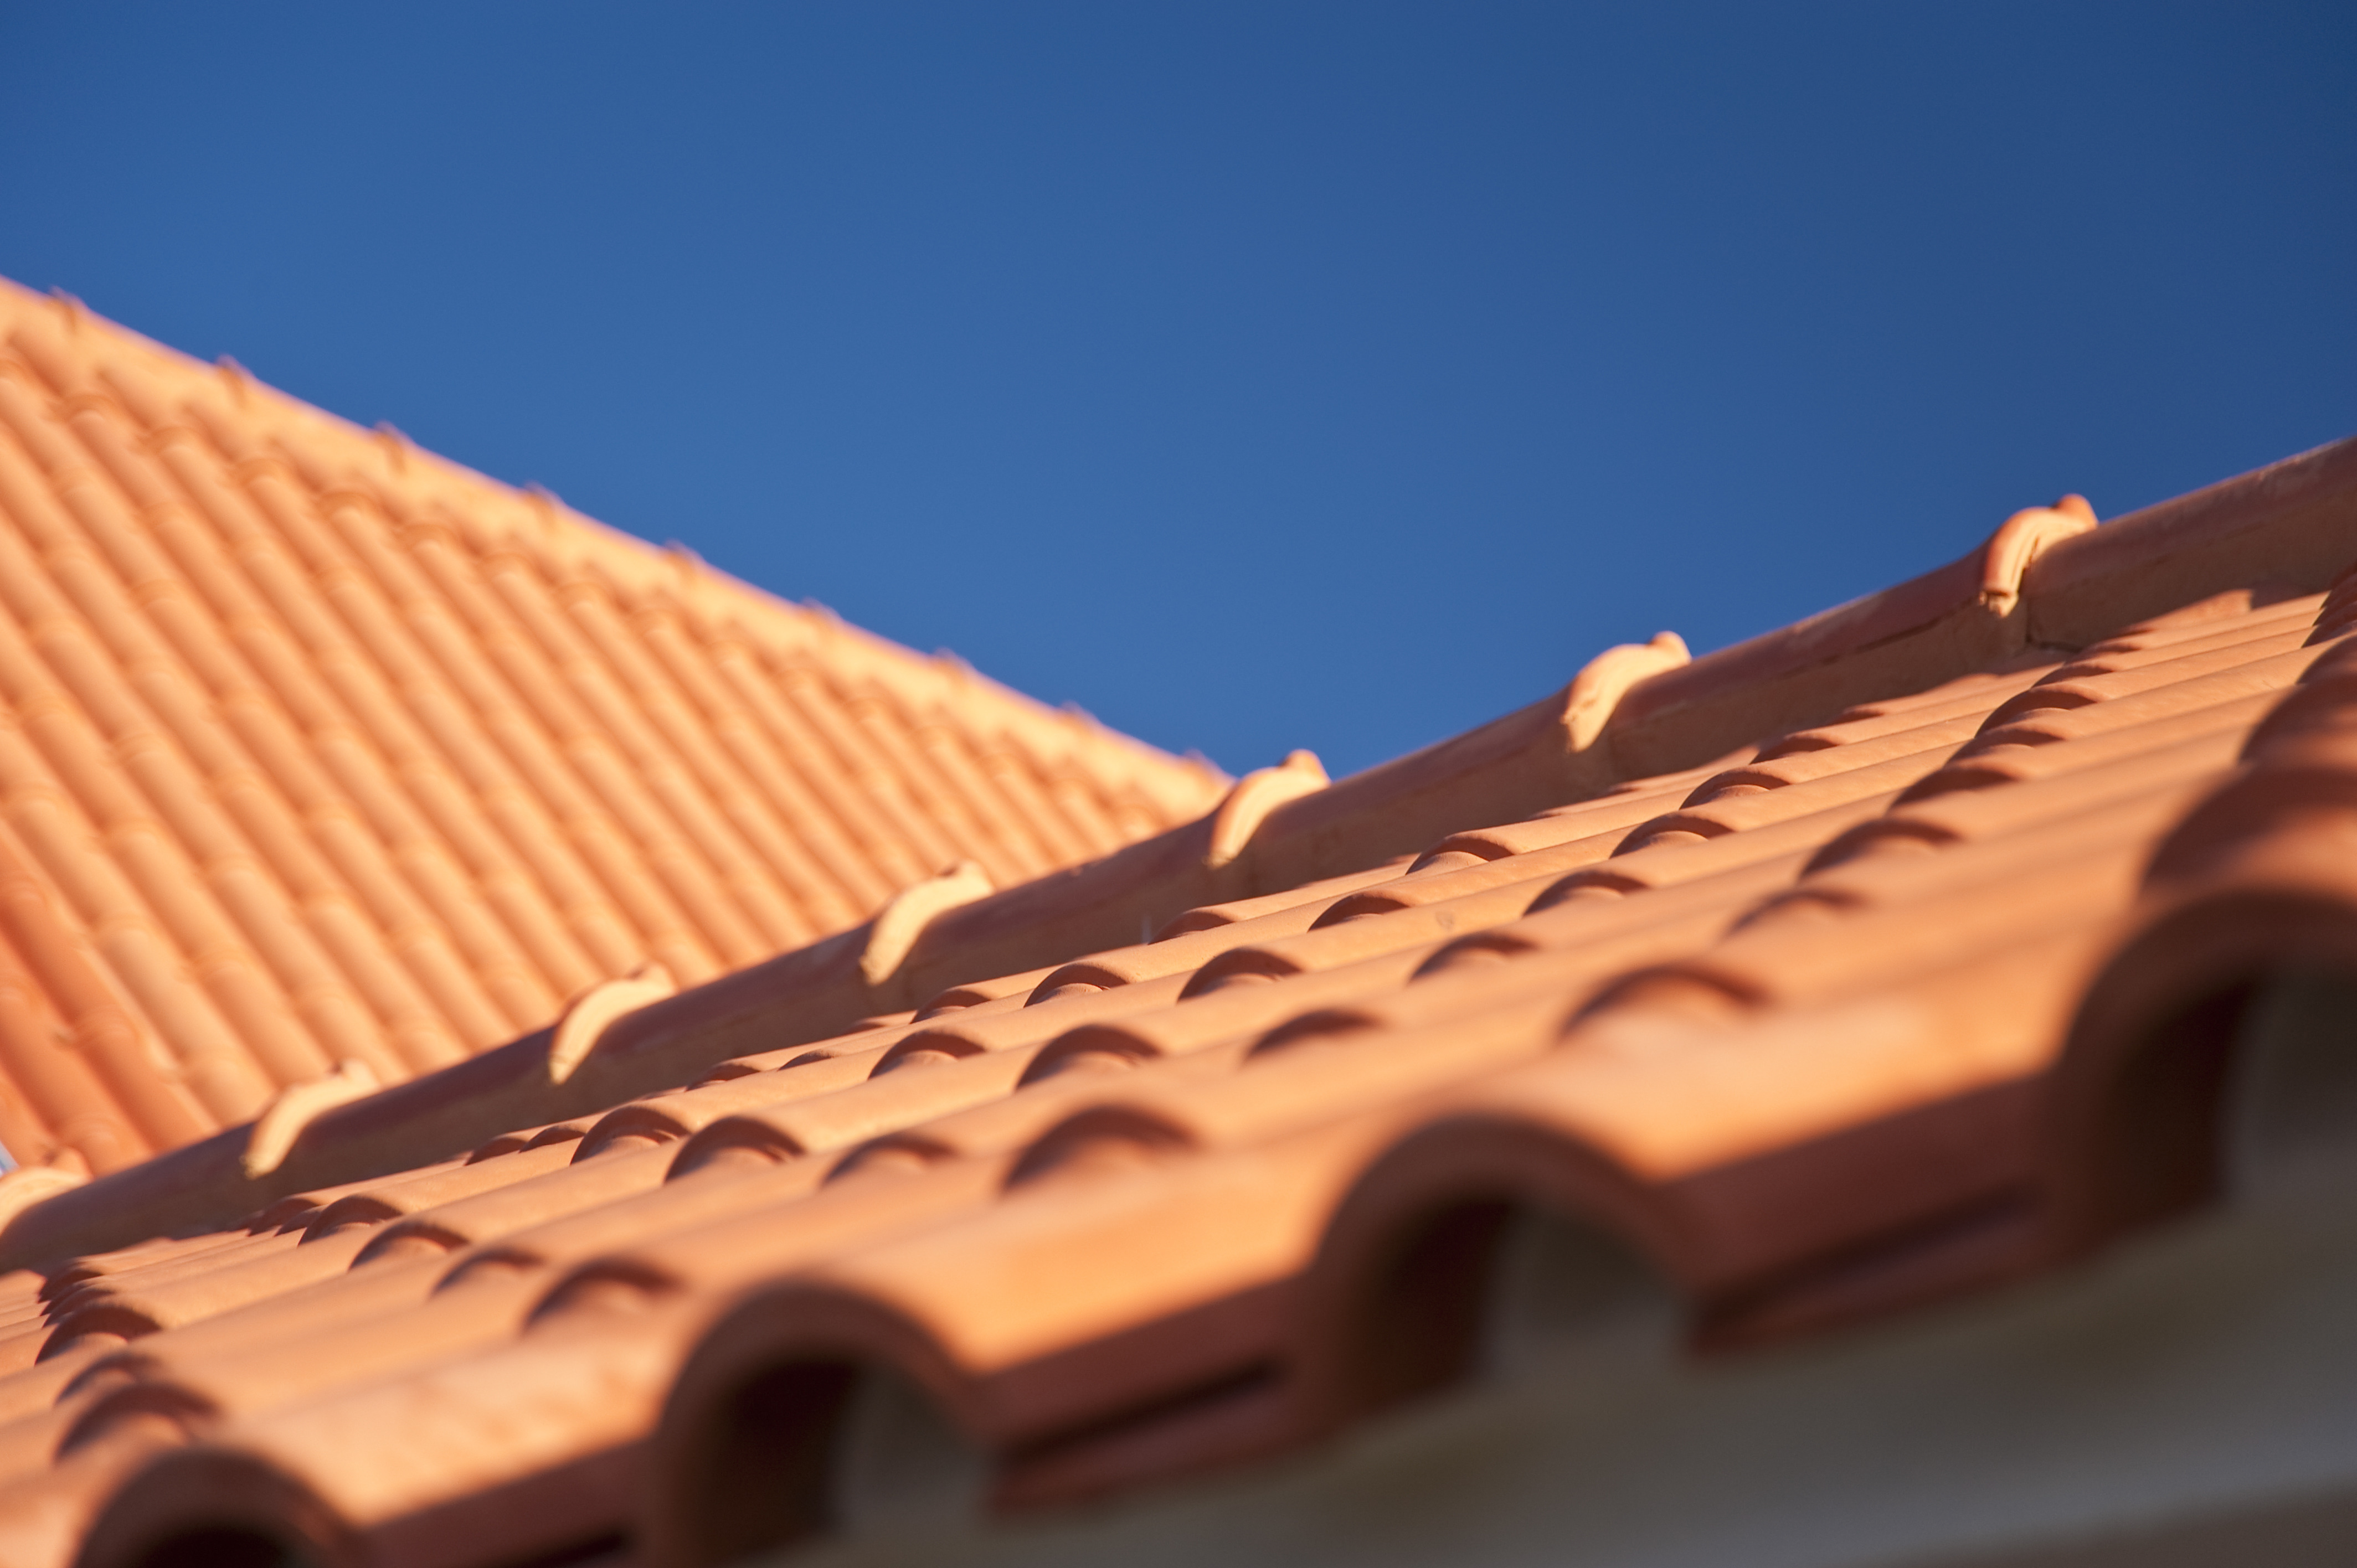 How to fool a radon test - Roof Inspections In South Florida